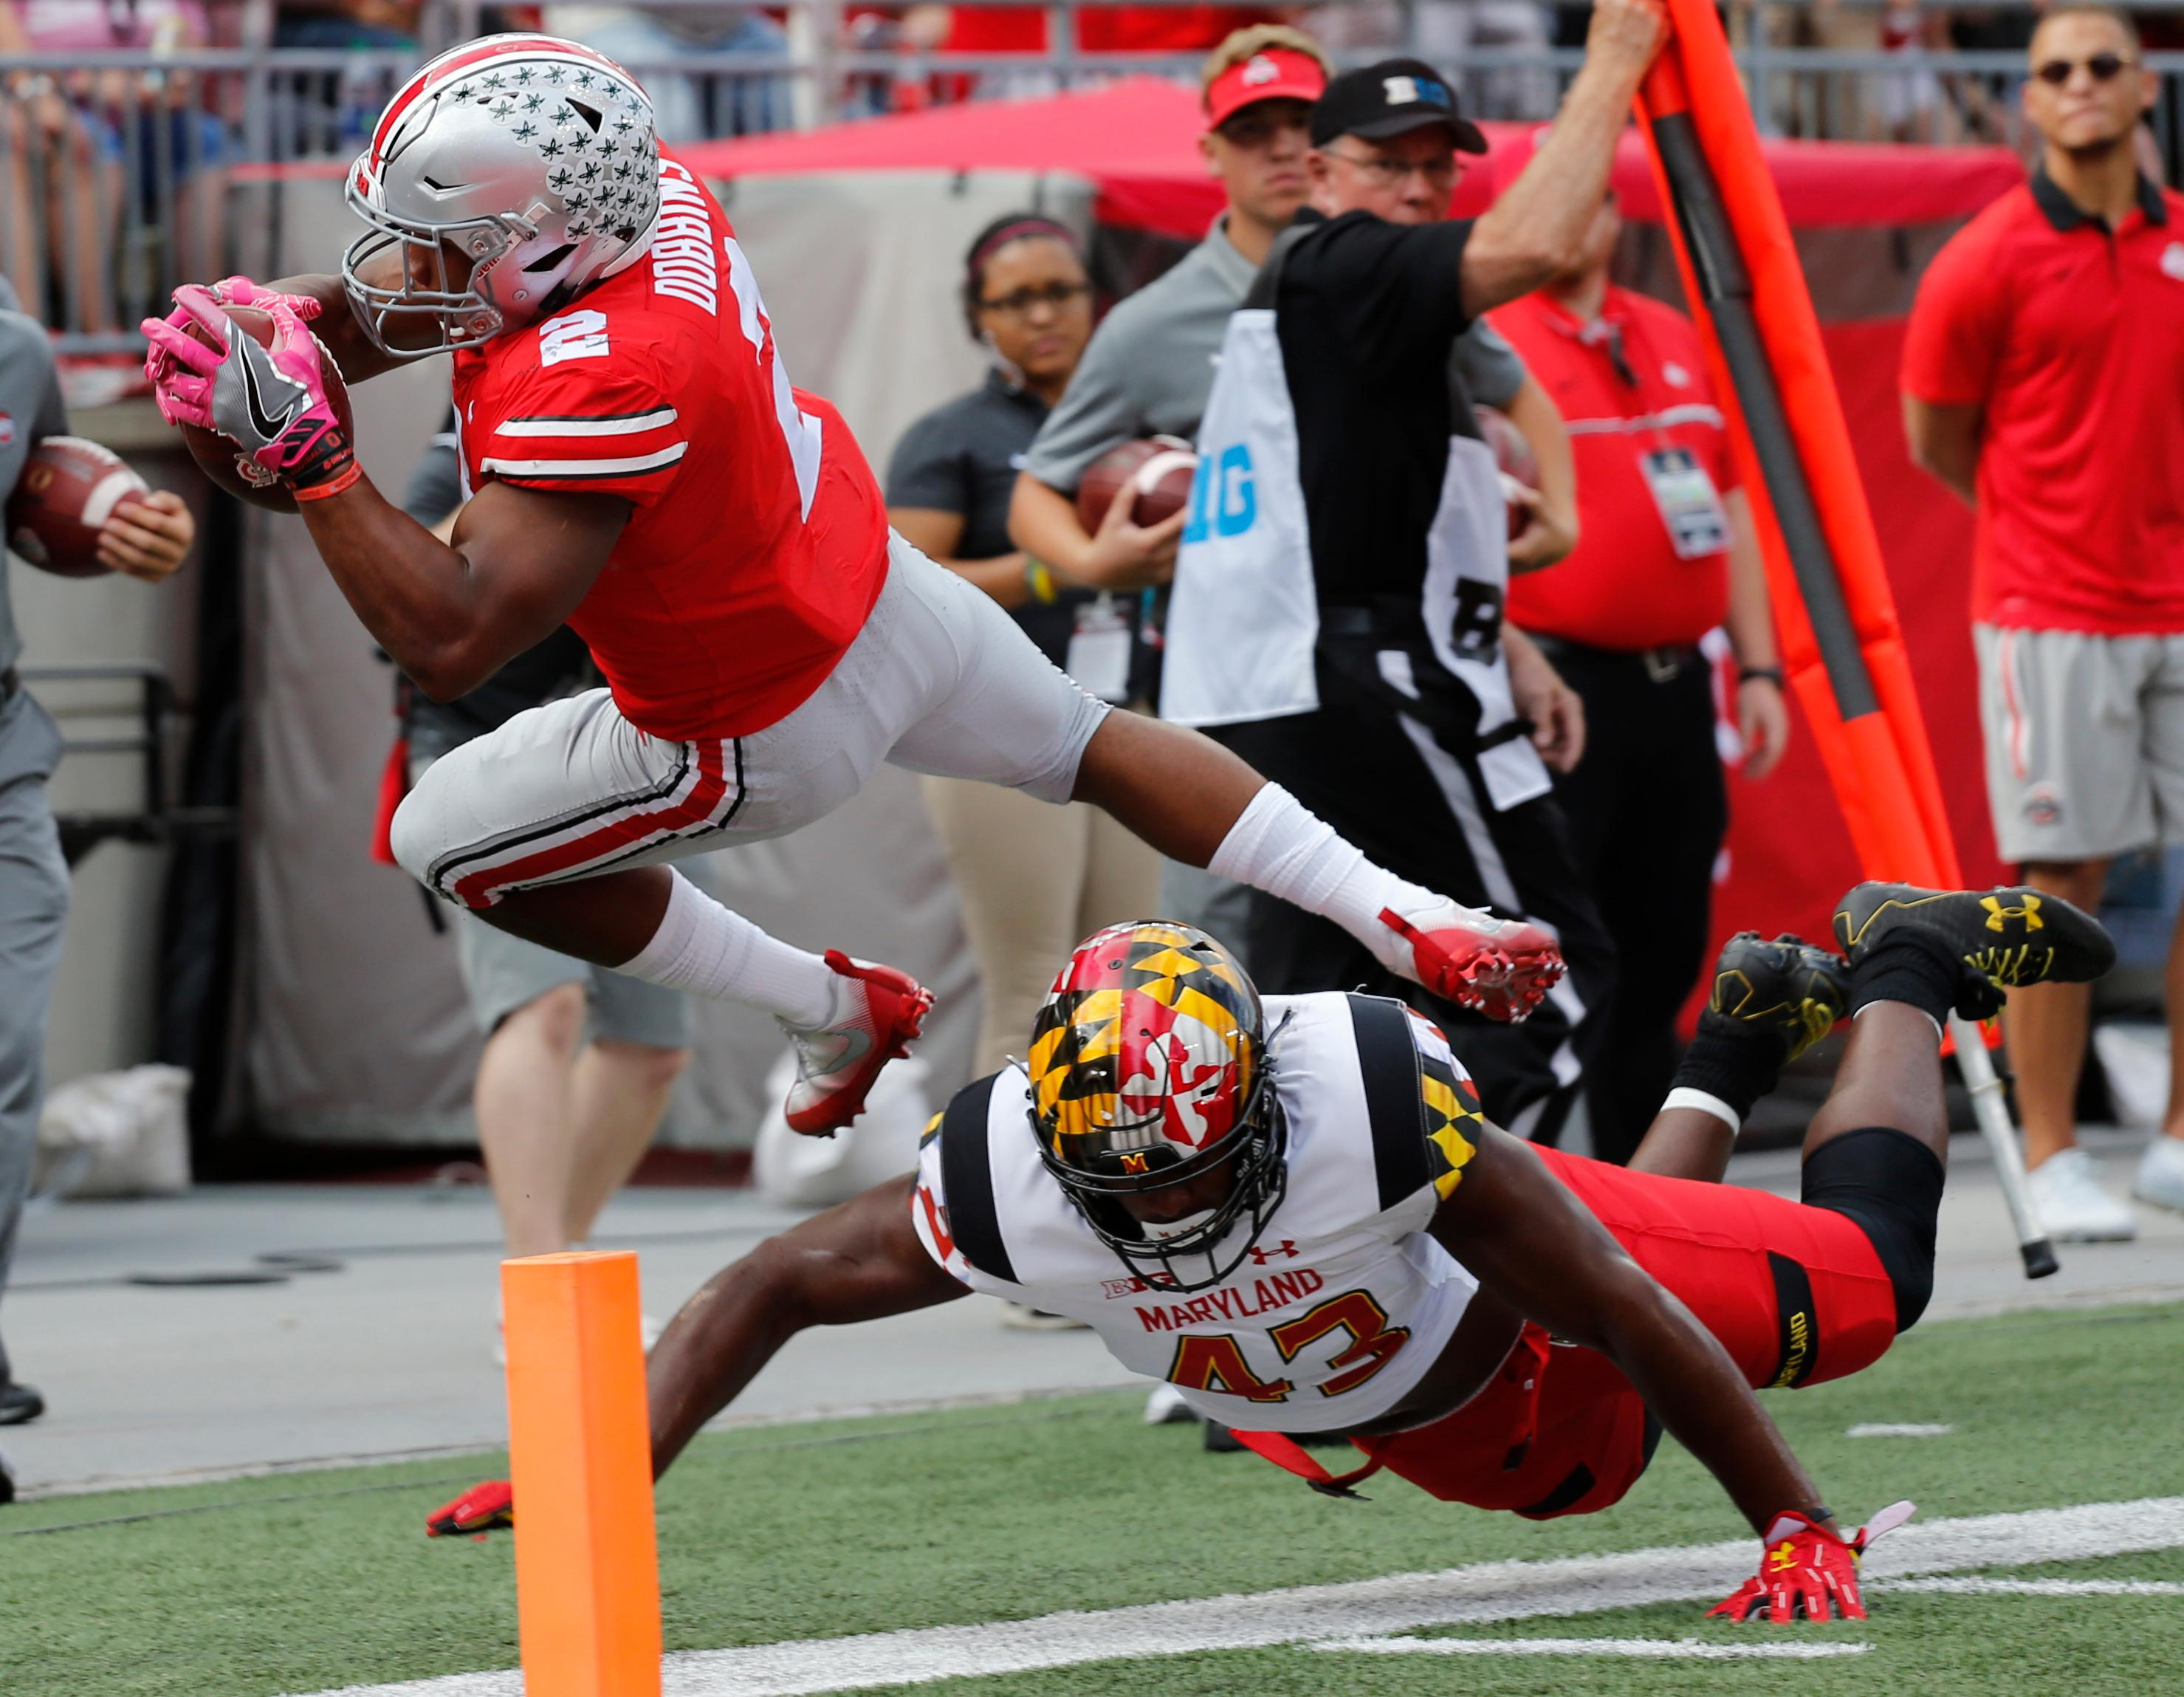 Maryland linebacker Jalin Brooks, right, forces Ohio State running back J.K. Dobbins out of bounds during the first half of an NCAA college football game Saturday, Oct. 7, 2017, in Columbus, Ohio. (AP Photo/Jay LaPrete)